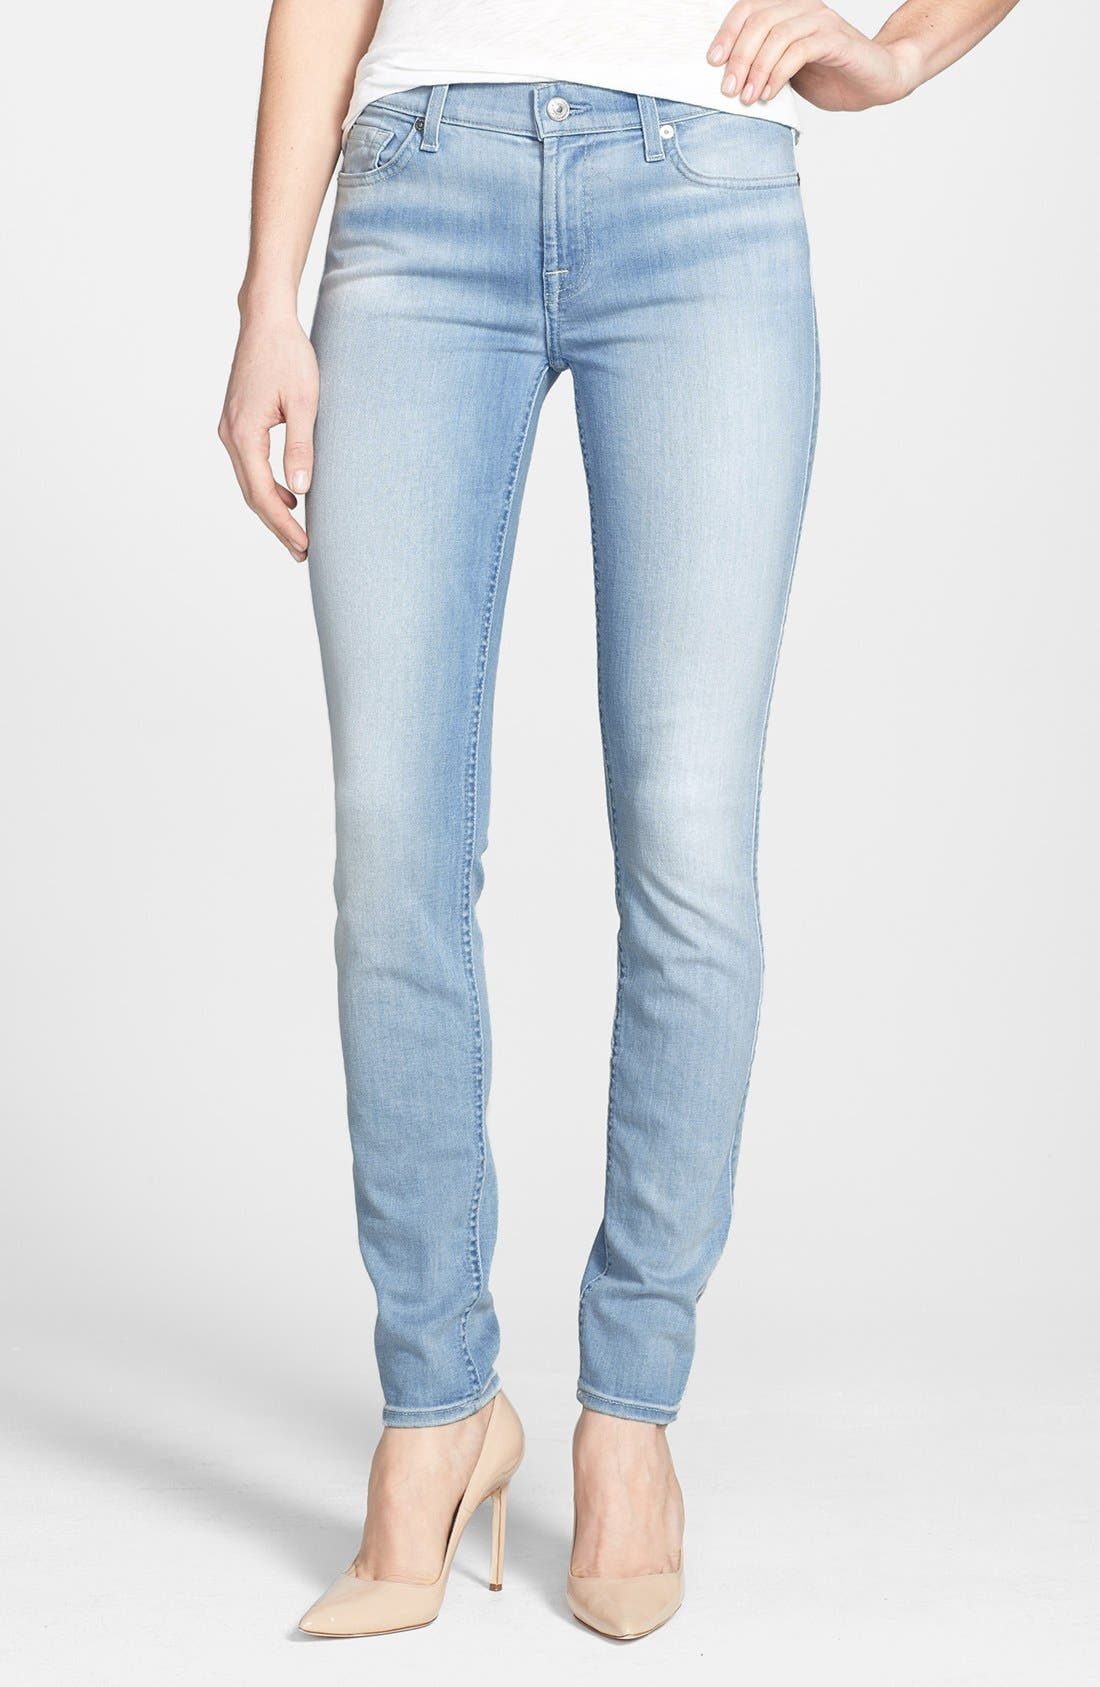 Main Image - 7 For All Mankind® 'The Skinny' Mid Rise Jeans (Sky Blue)